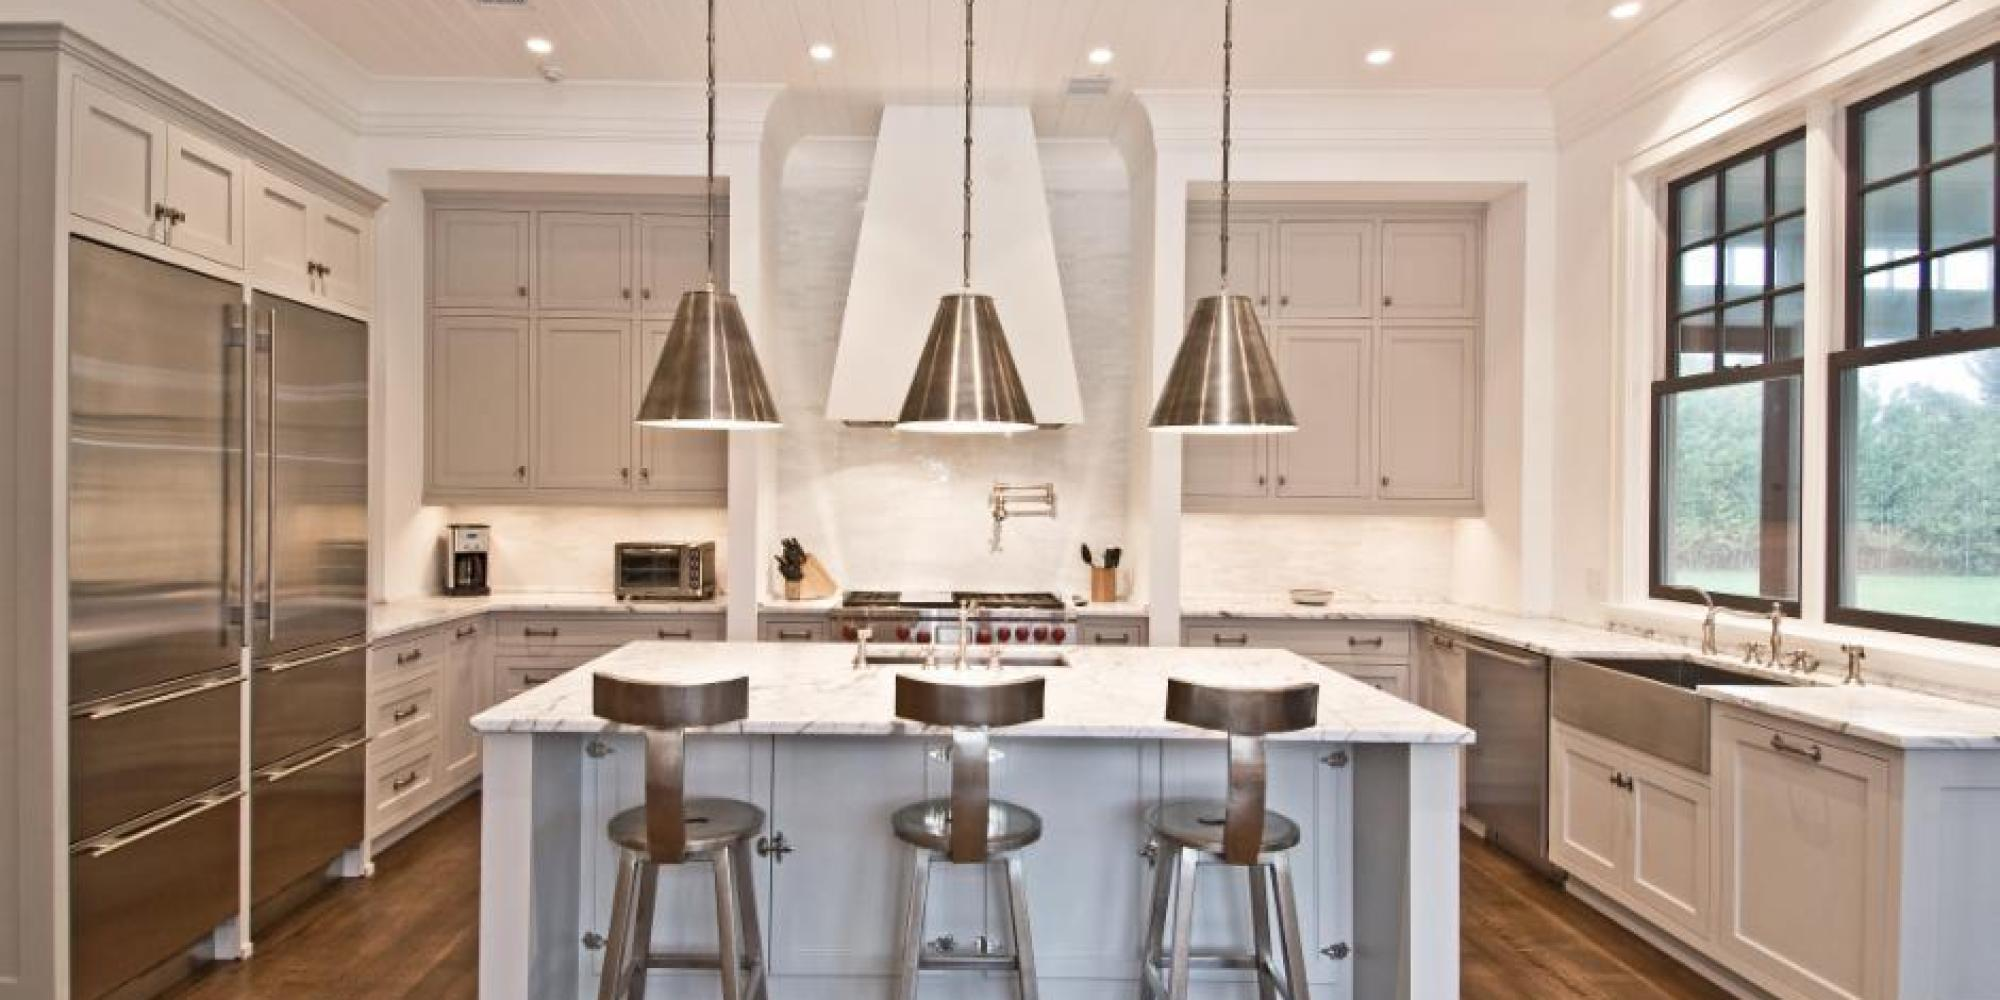 The Best Paint Colors For Every Type Of Kitchen HuffPost - How to paint kitchen cabinets gray